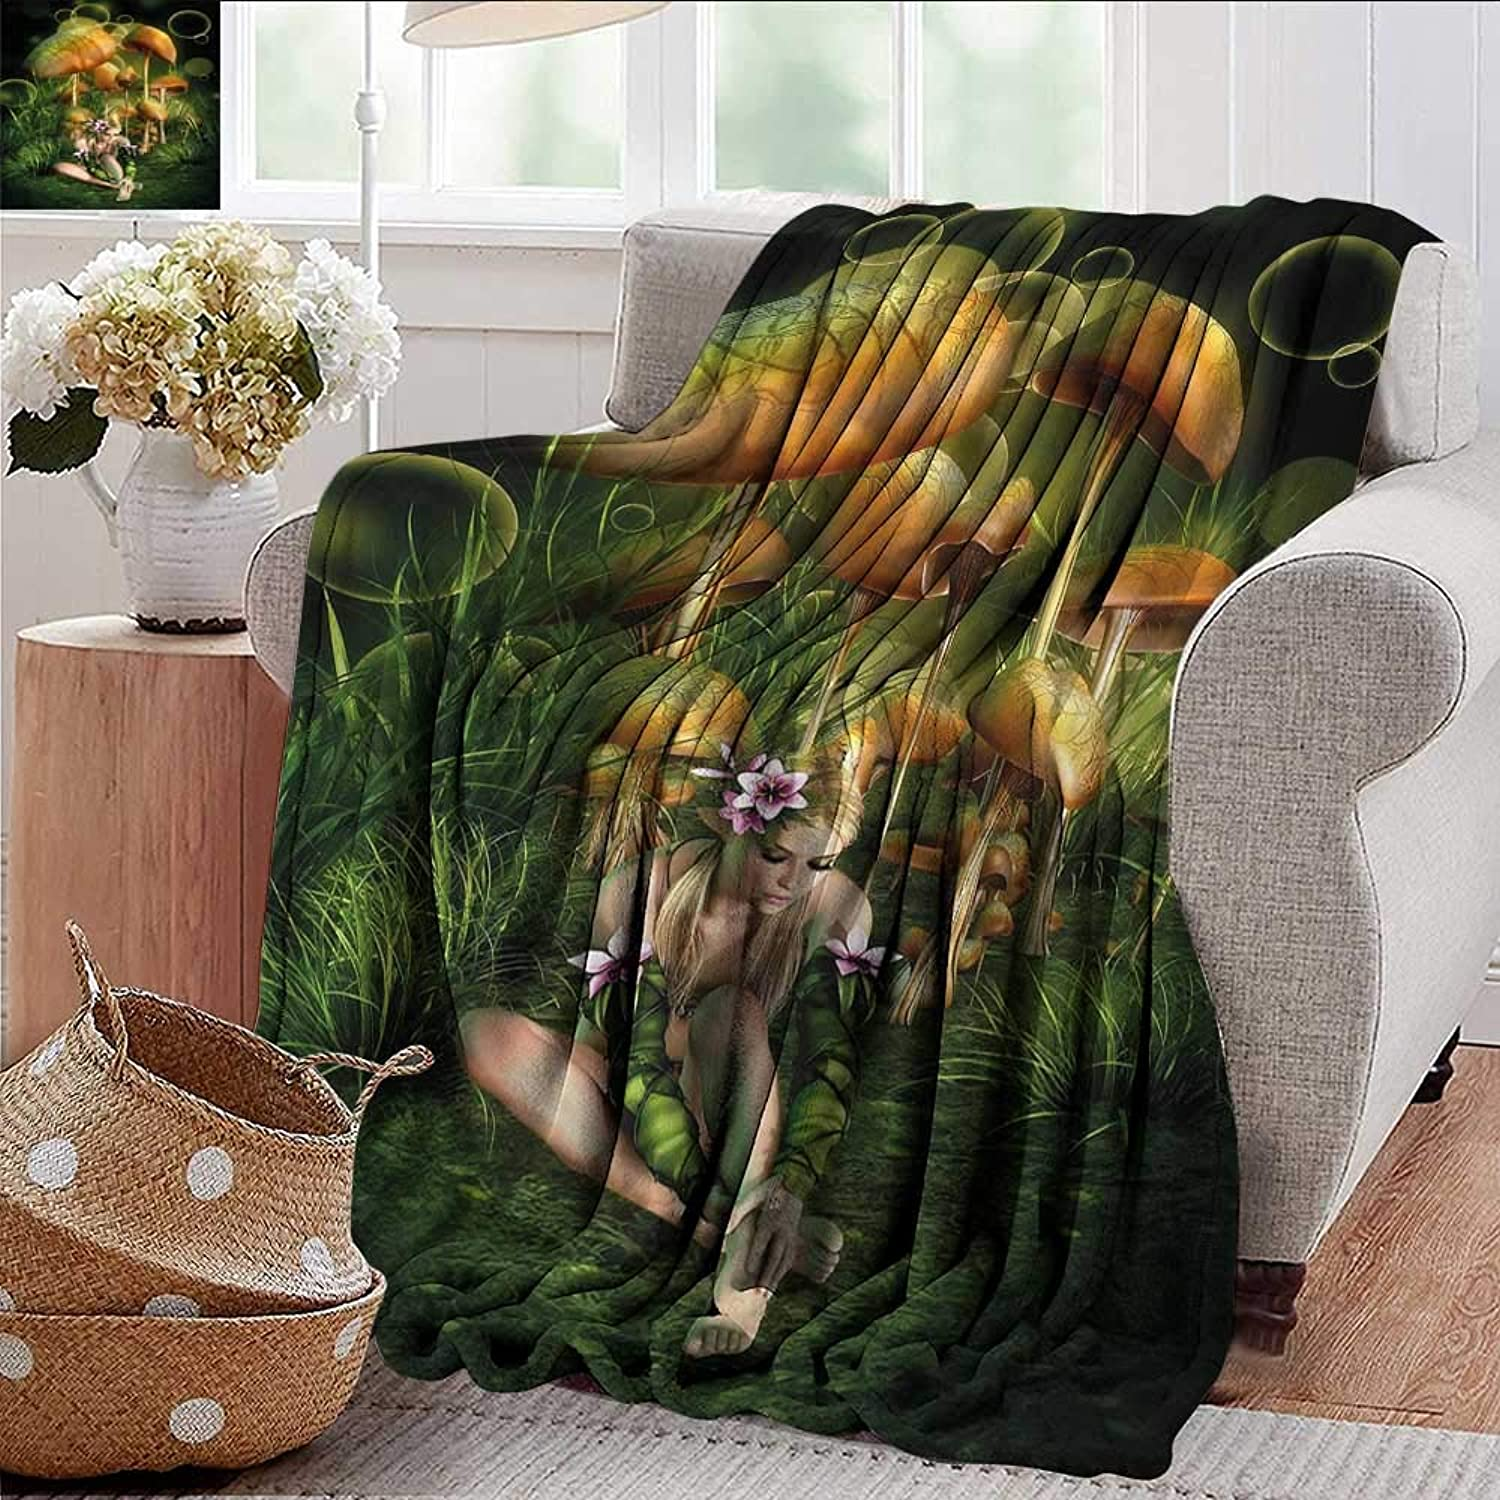 Xaviera Doherty Weighted Blanket for Kids Mushroom,Elf Woman Enchanted Forest Soft Summer Cooling Lightweight Bed Blanket 50 x60